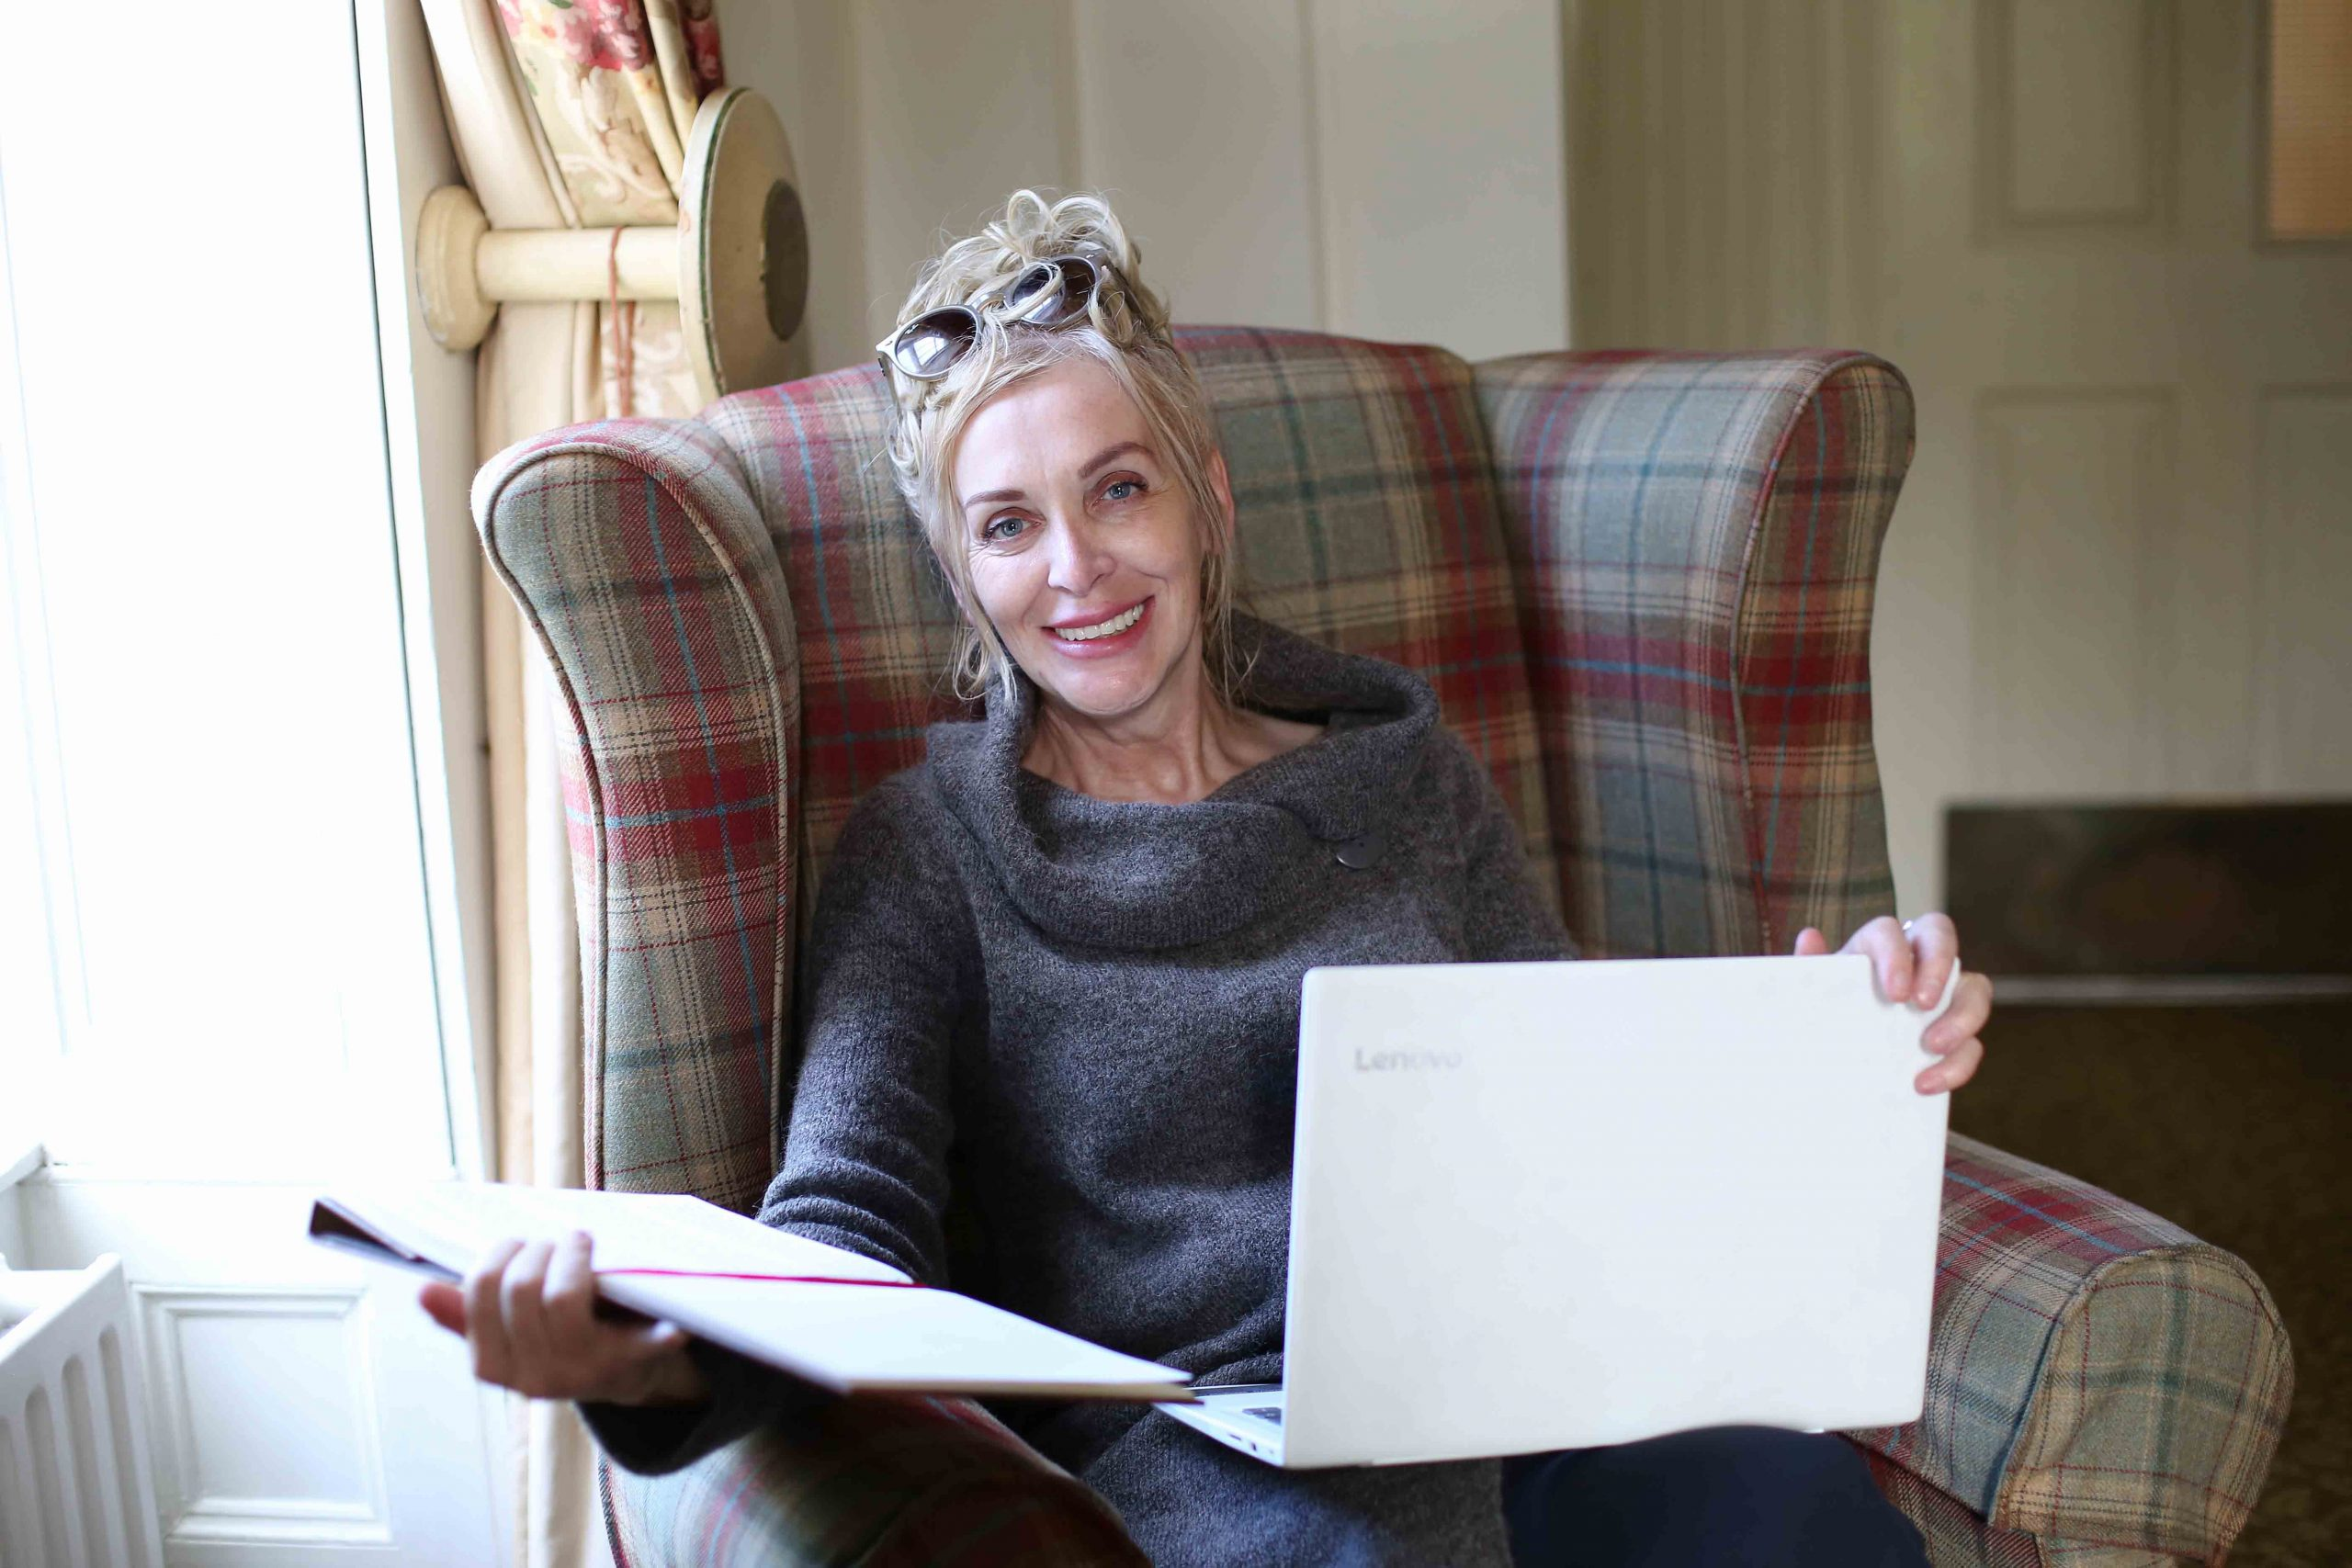 TICKET TO WRITE: National Lottery winner Anne Canavan made an emotional return to the Beech Hill Country House Hotel where five years earlier, she announced that she had won a life-changing £1M on EuroMillions. Inventor Anne, who is also working on a number of writing projects, says that the money she won has afforded her the freedom to spend more time with the people she loves, travel the world and pursue her passions.